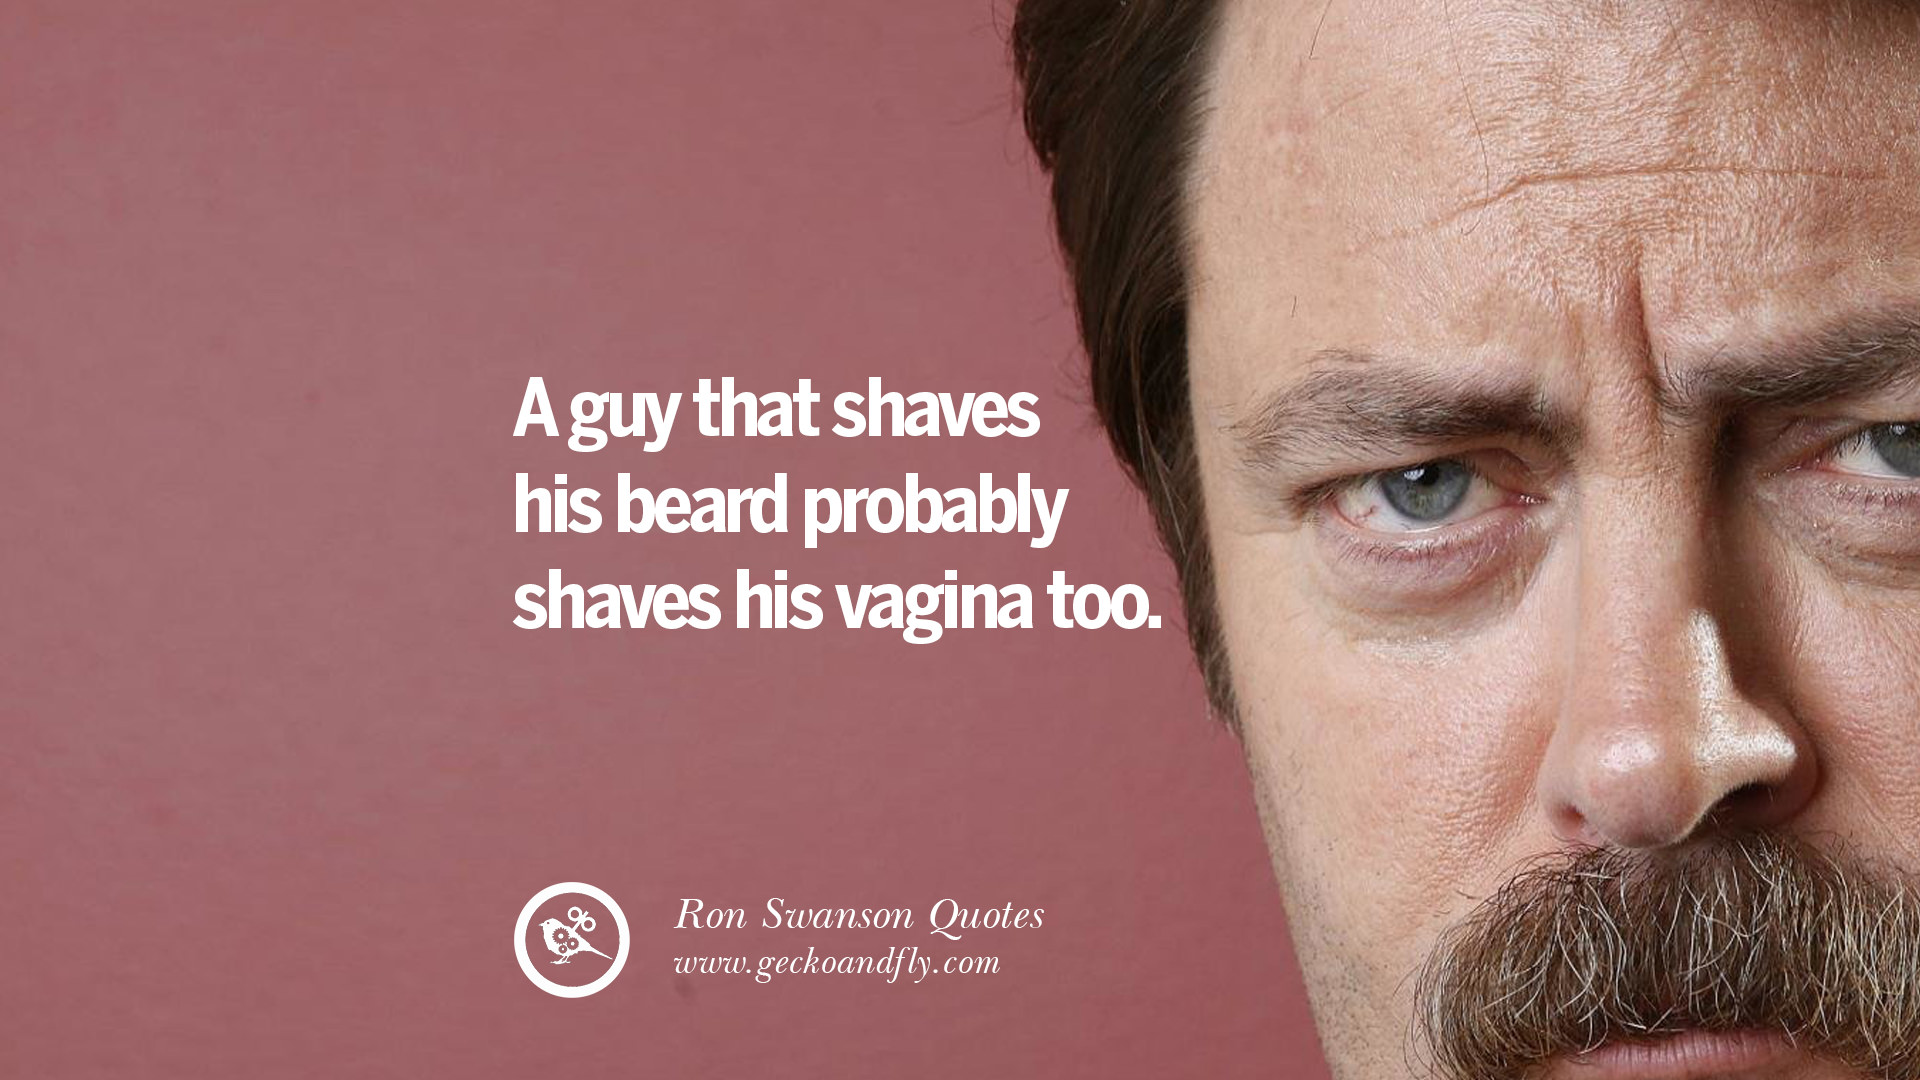 14 Funny Ron Swanson Quotes And Meme On Life  Ron Swanson Quotes Salad